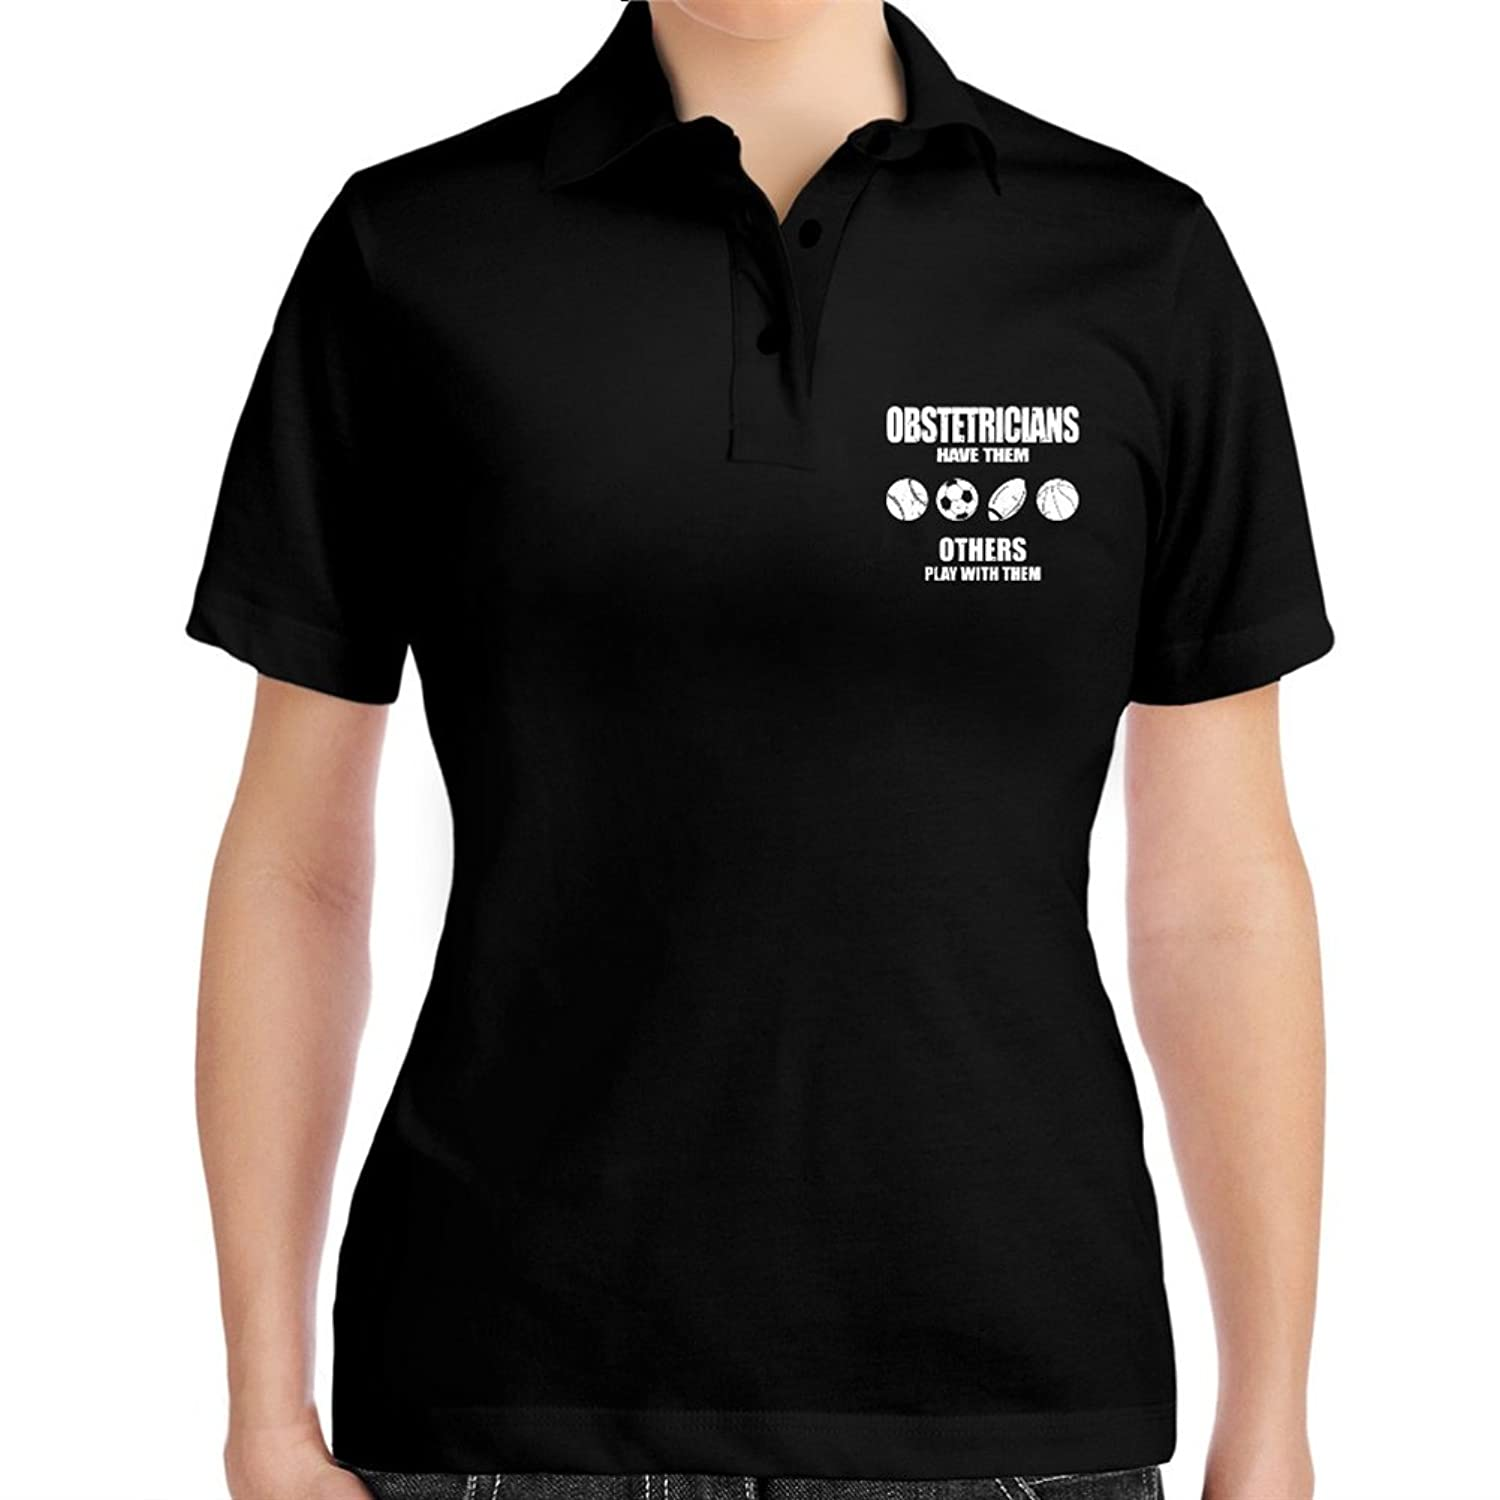 Obstetrician have them others play with them Women Polo Shirt